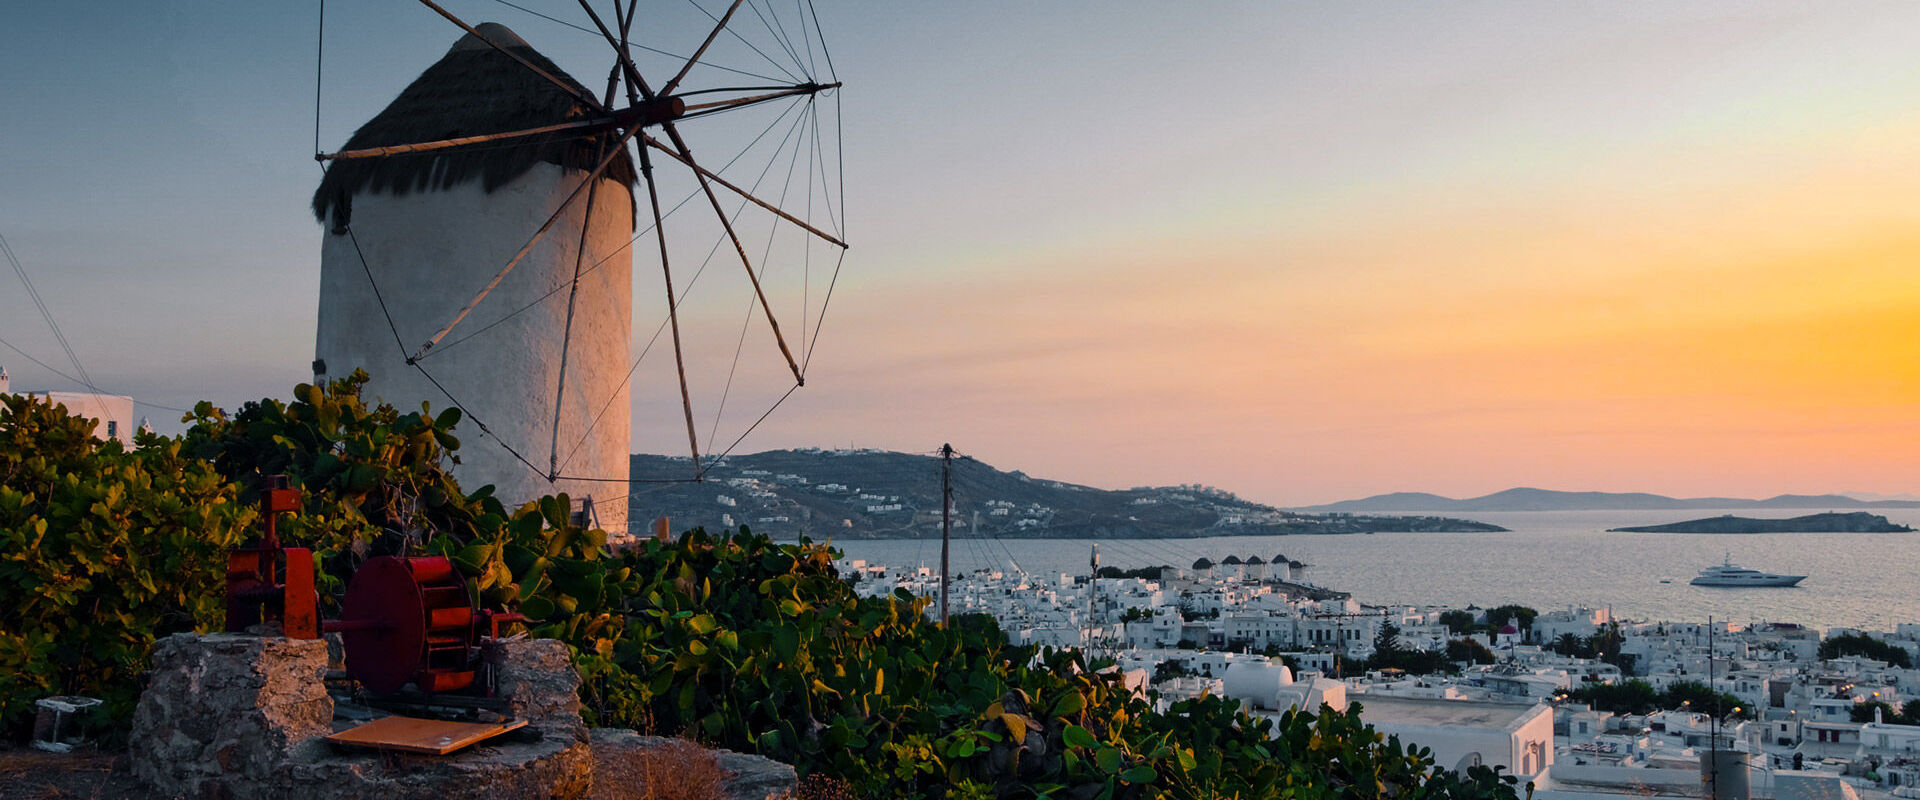 The traditional windmills of Mykonos is one of the best sunset spots